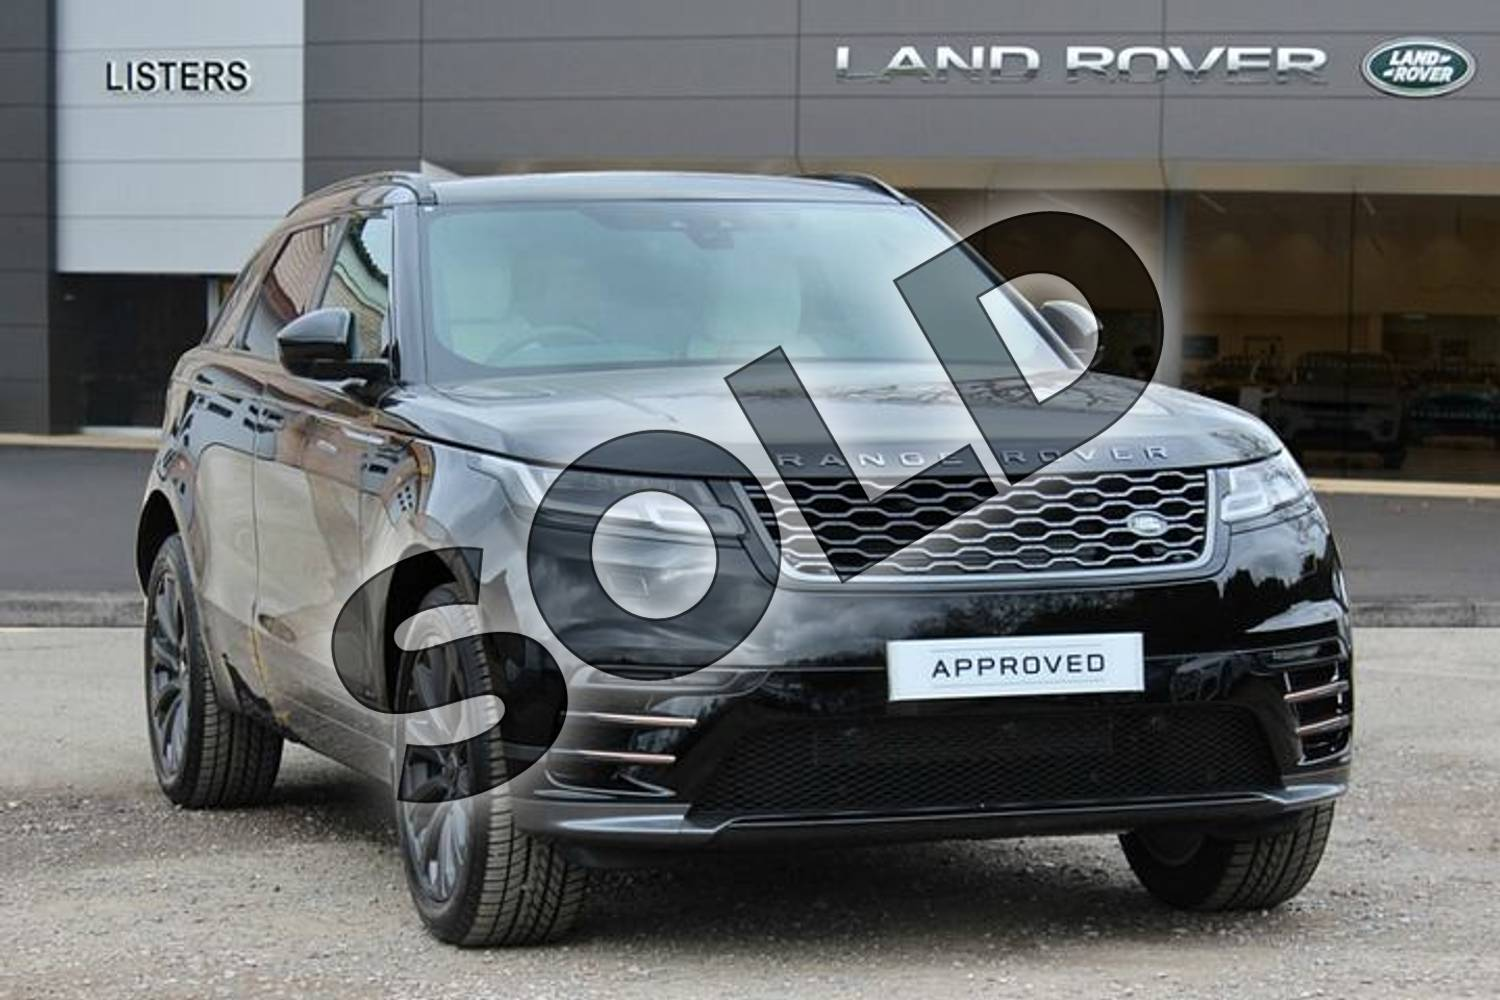 2019 Range Rover Velar Diesel Estate Diesel 2.0 D180 R-Dynamic S 5dr Auto in Narvik Black at Listers Land Rover Solihull